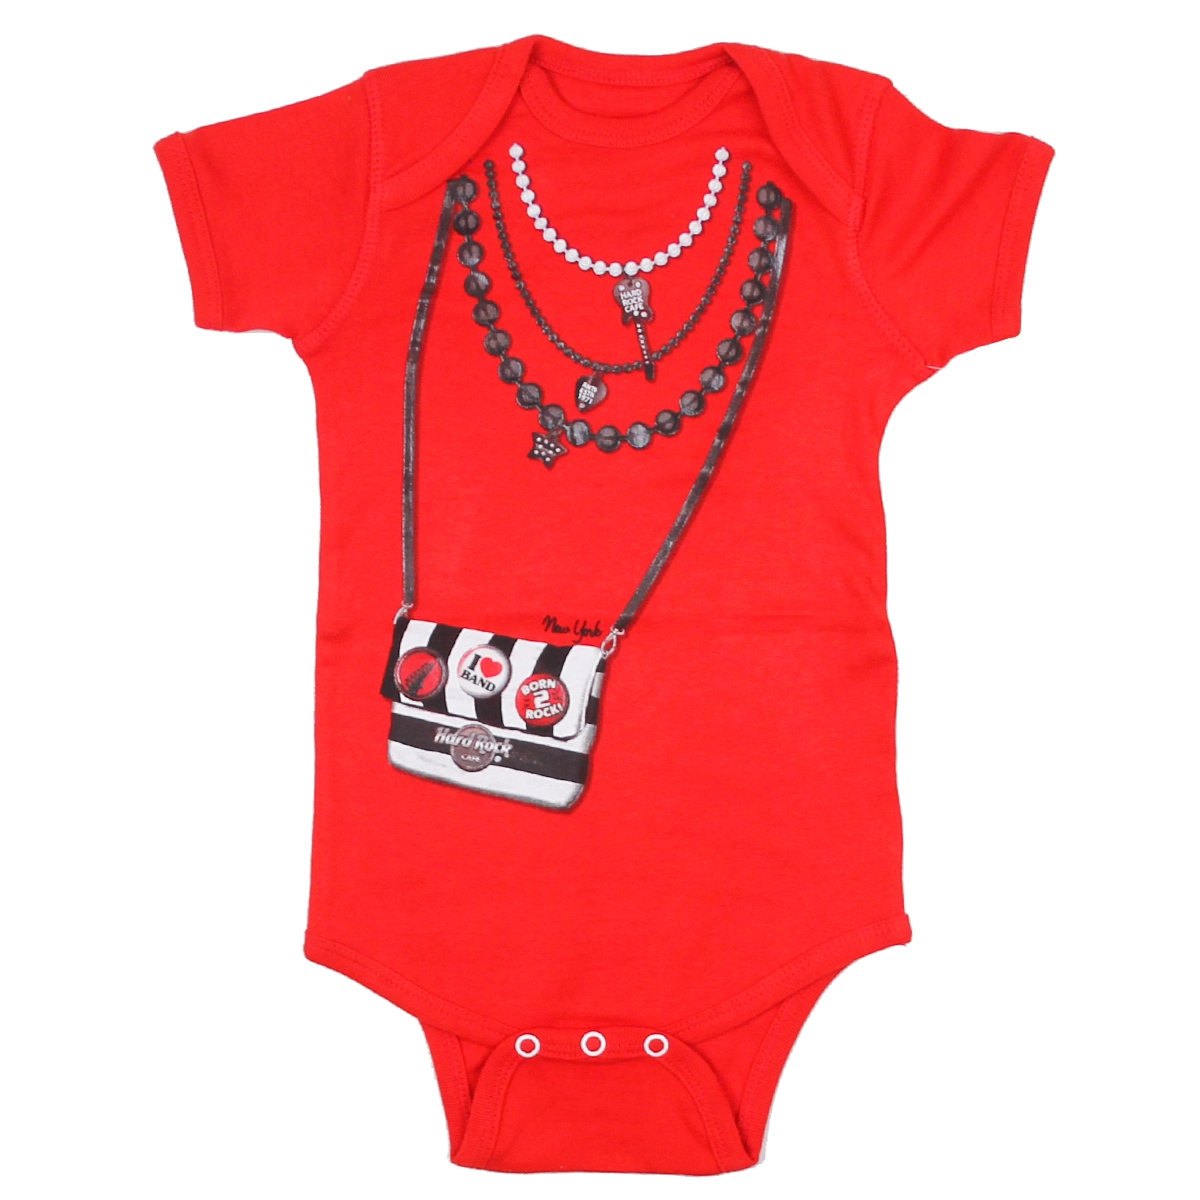 Girls Red Purse Onesie, New York 0